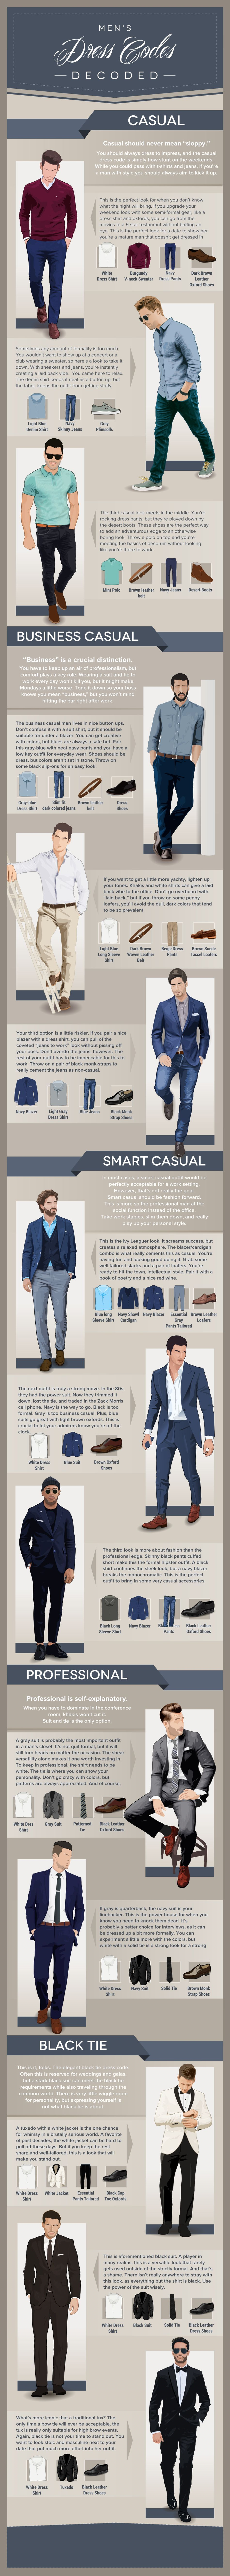 0f30bc38e Men's Dress Codes Infographic Mens fashion Infographic Ultimate Graphics  Designs is your one stop shop for